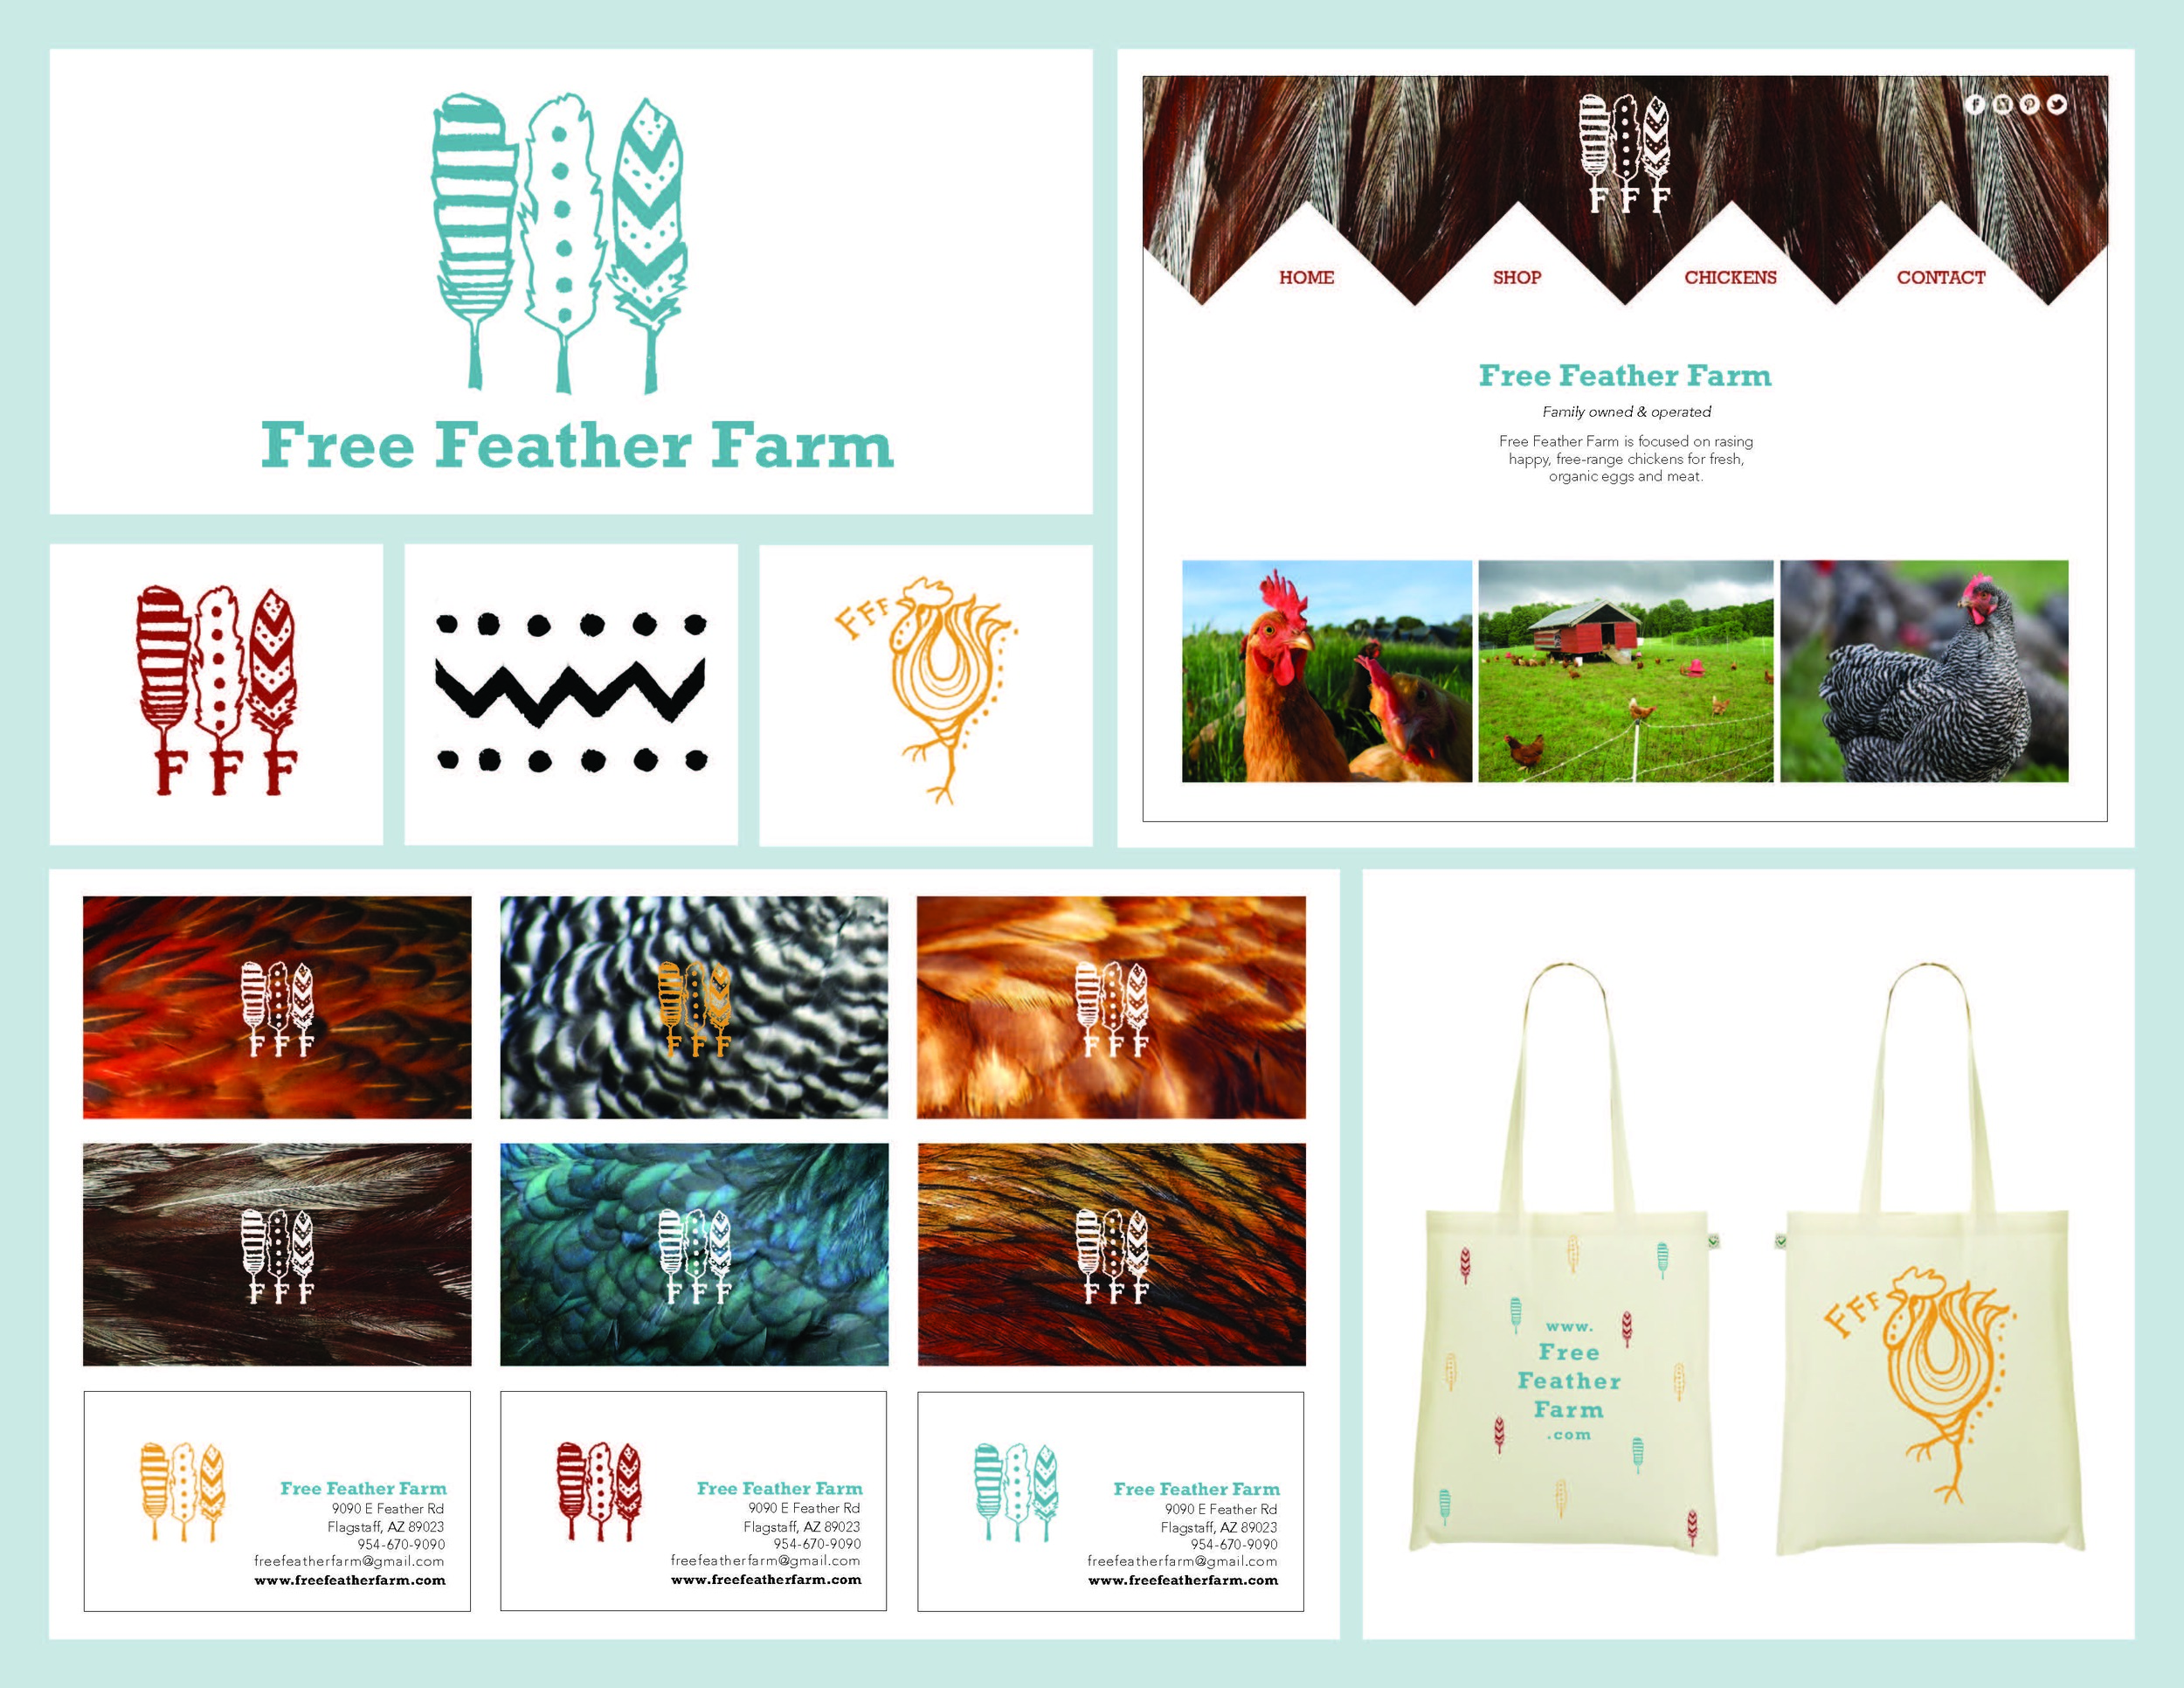 Free Feather Farm company –Company branding of sustainable chicken farm to increase cohesiveness. Created logo, website interface, business cards and reusable tote.